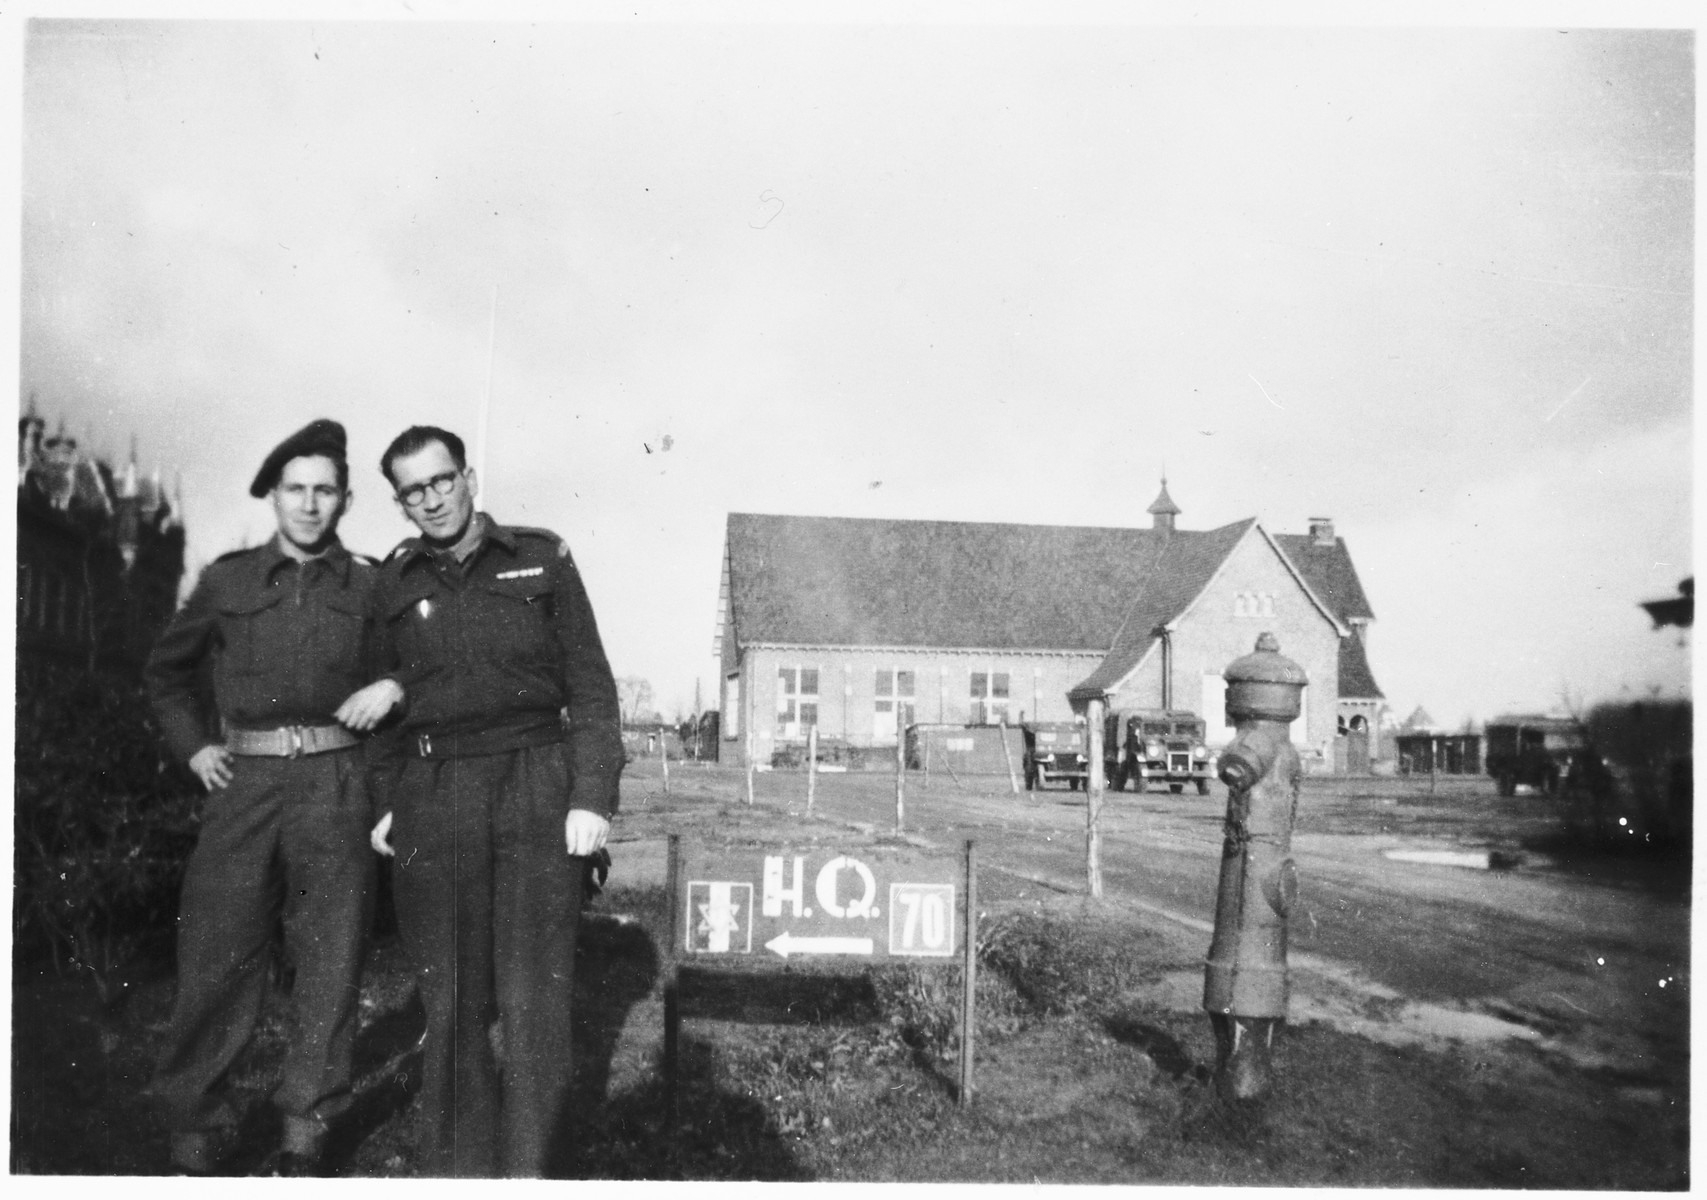 Two Jewish Brigade soldiers pose outside their headquarters in Breda, Holland.